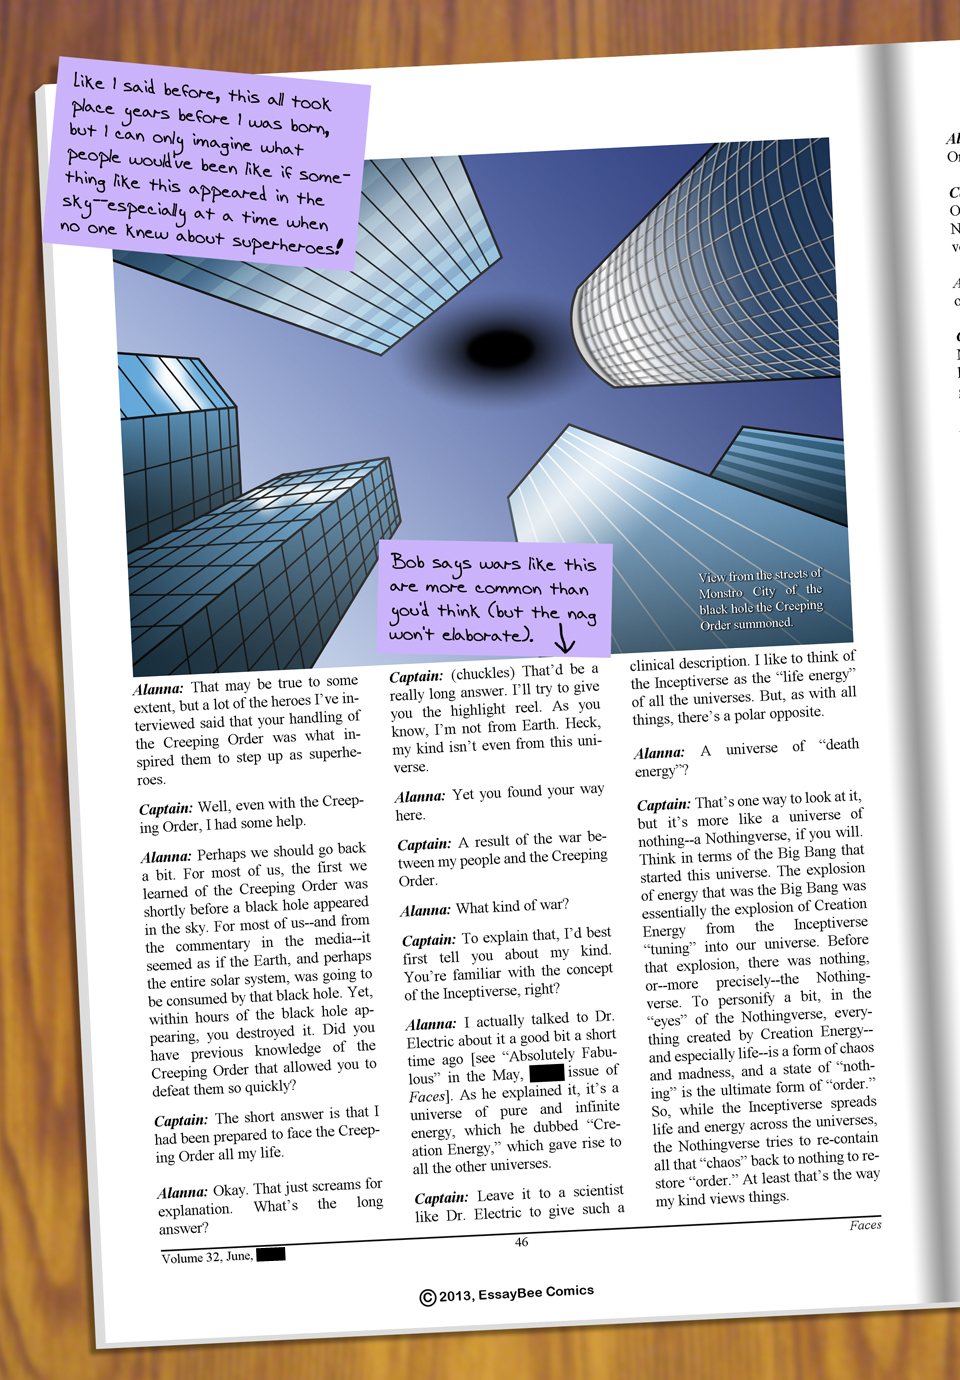 Interleude--Faces Magazine Interview 2 Page 03